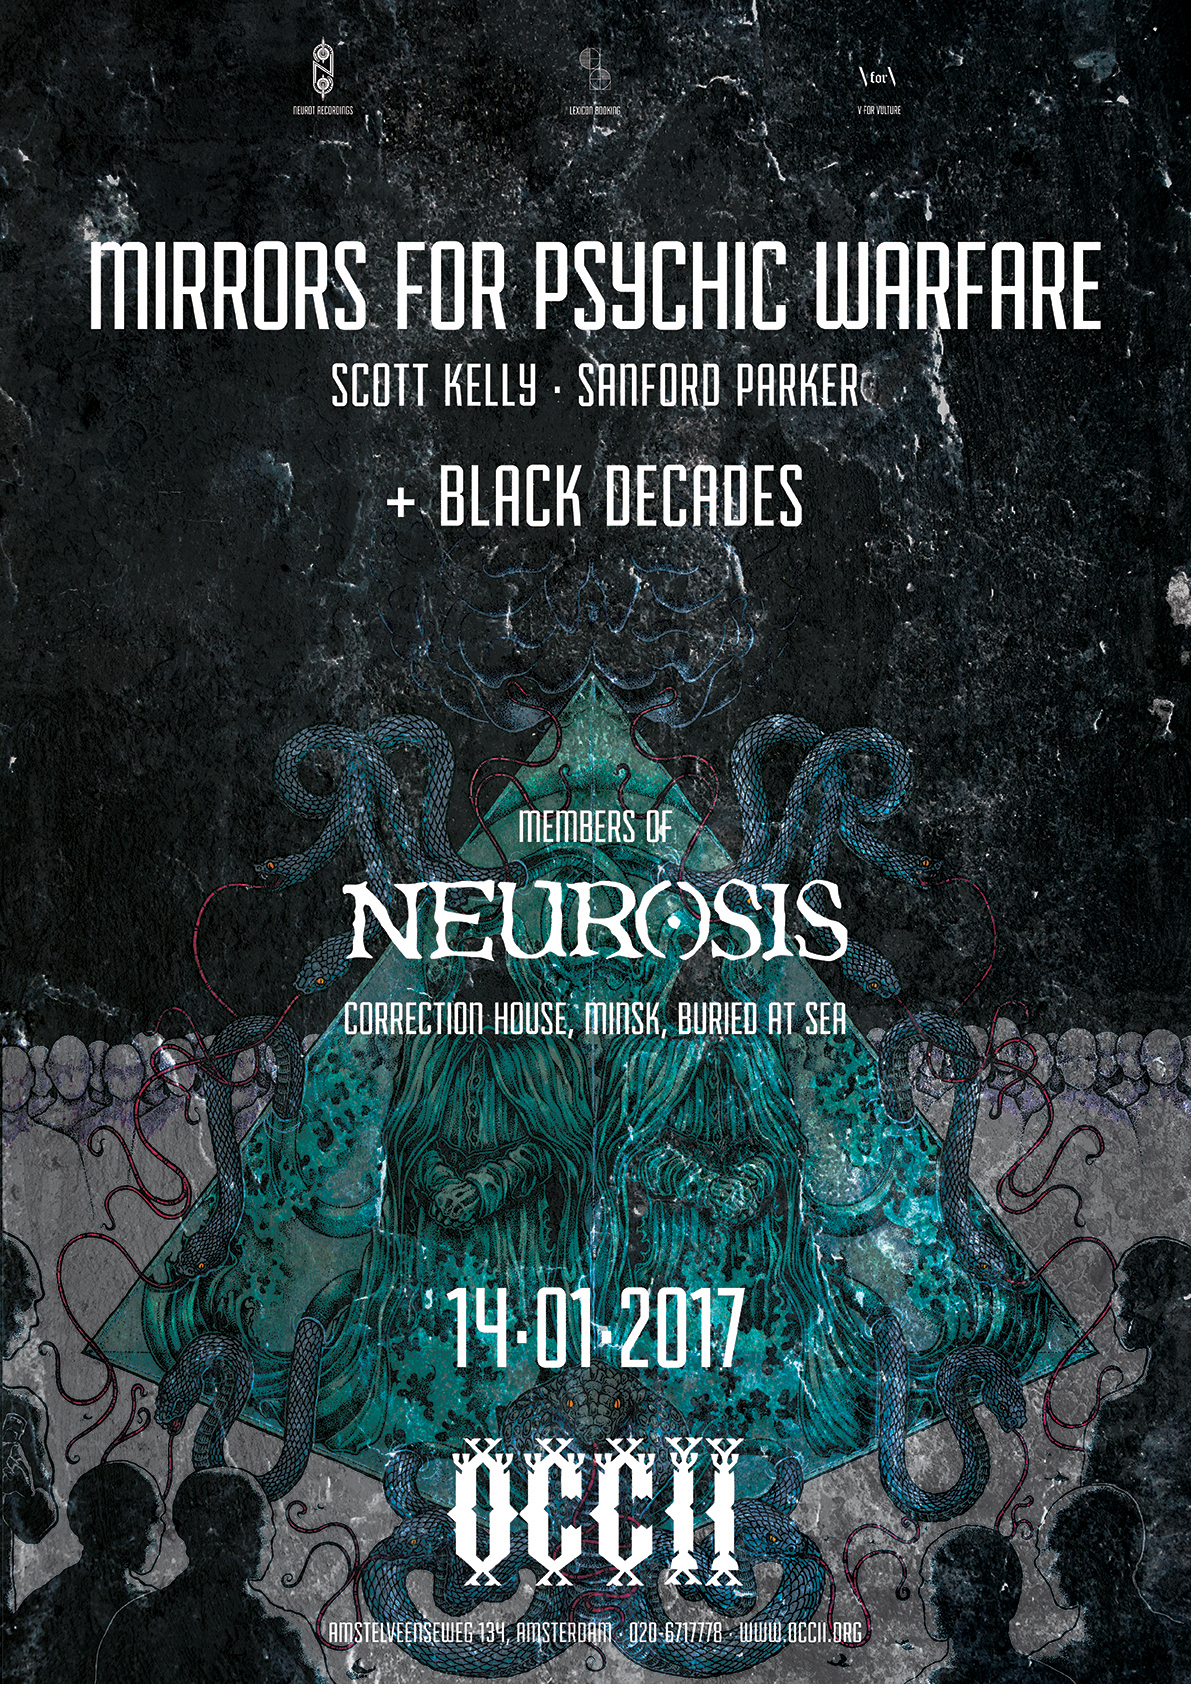 Mirrors for Psychic Warfare / Black Decades poster